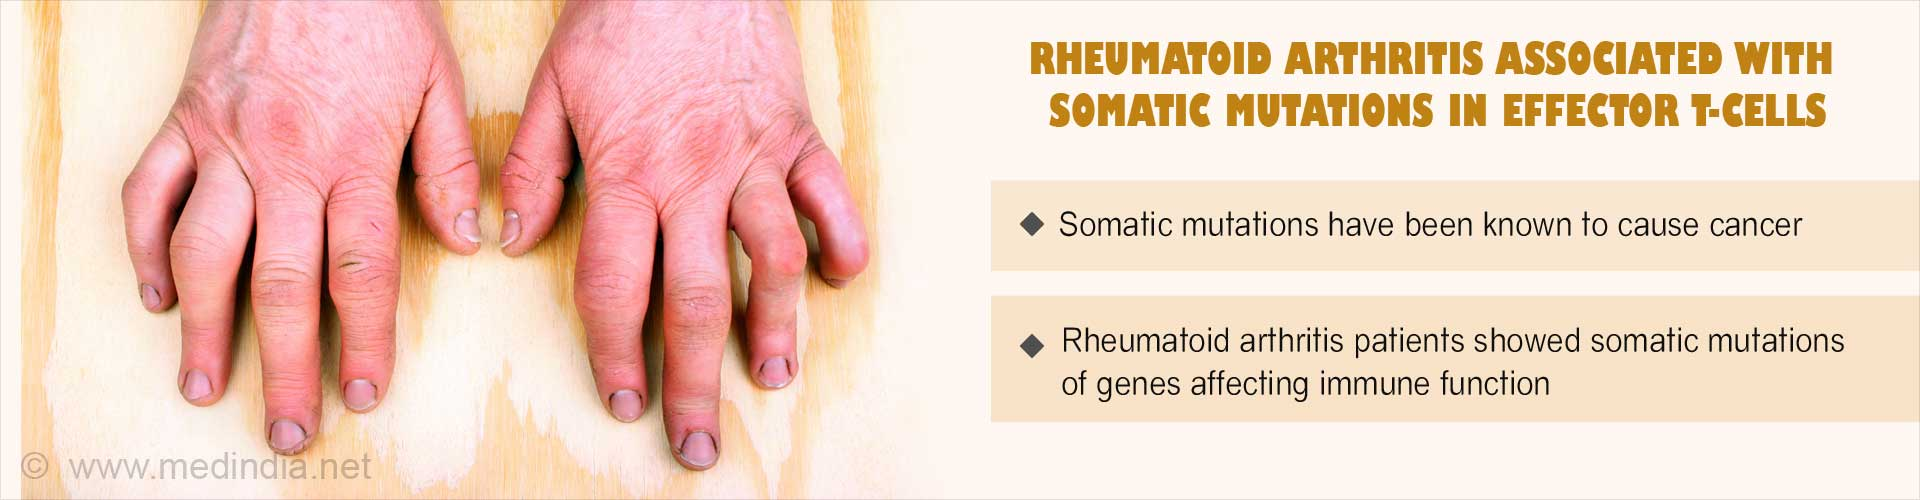 Rheumatoid Arthritis: Somatic Mutations In Mature T-Cells Unearthed